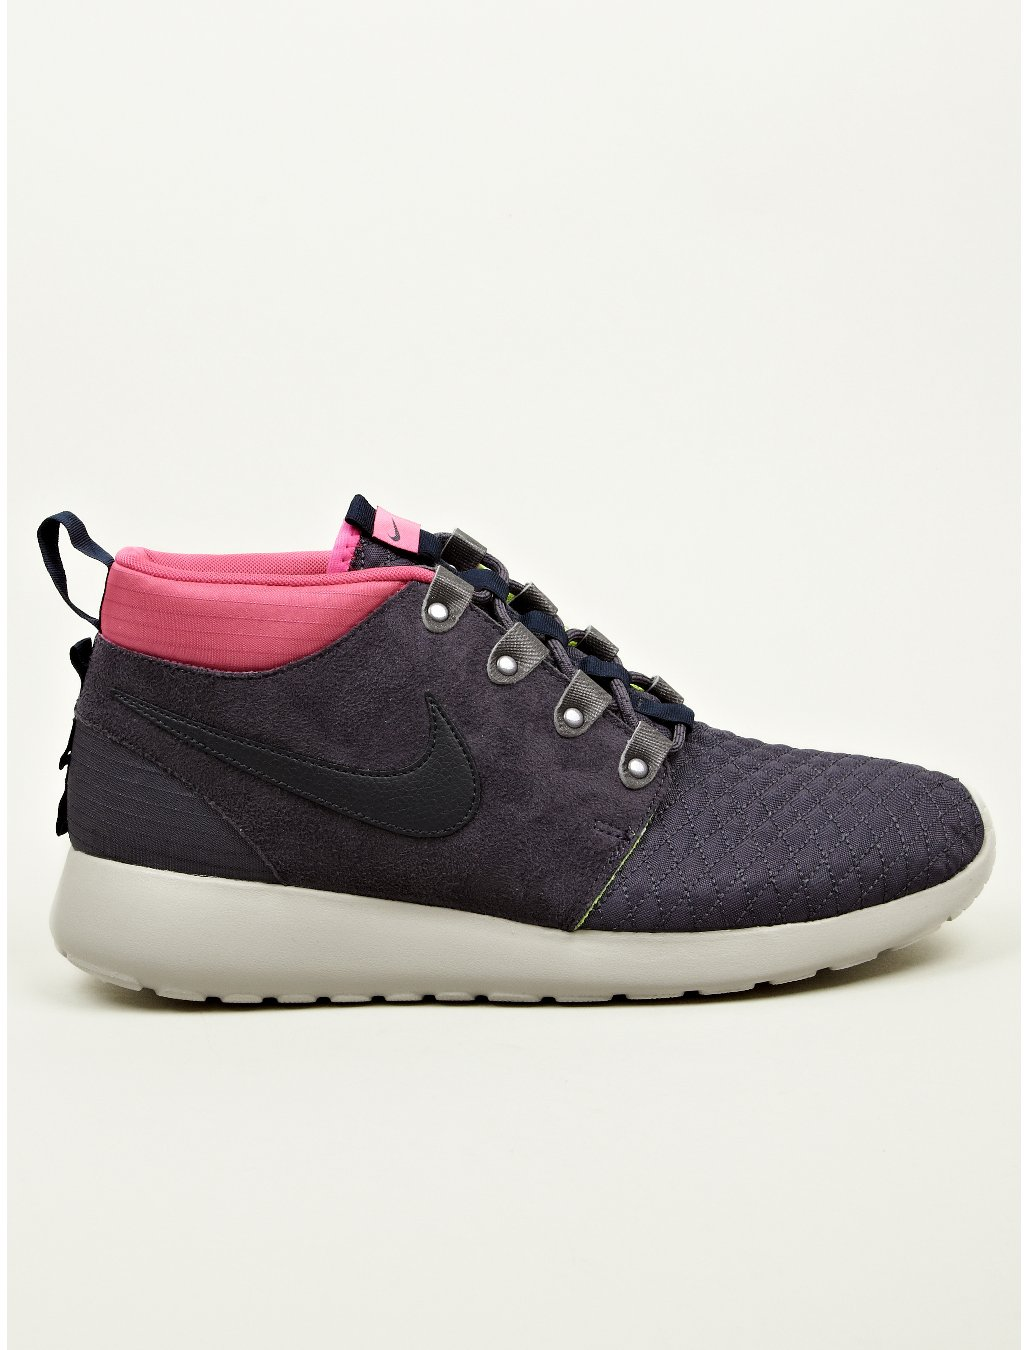 nike mens navy blue roshe run sneakerboots in pink for men. Black Bedroom Furniture Sets. Home Design Ideas